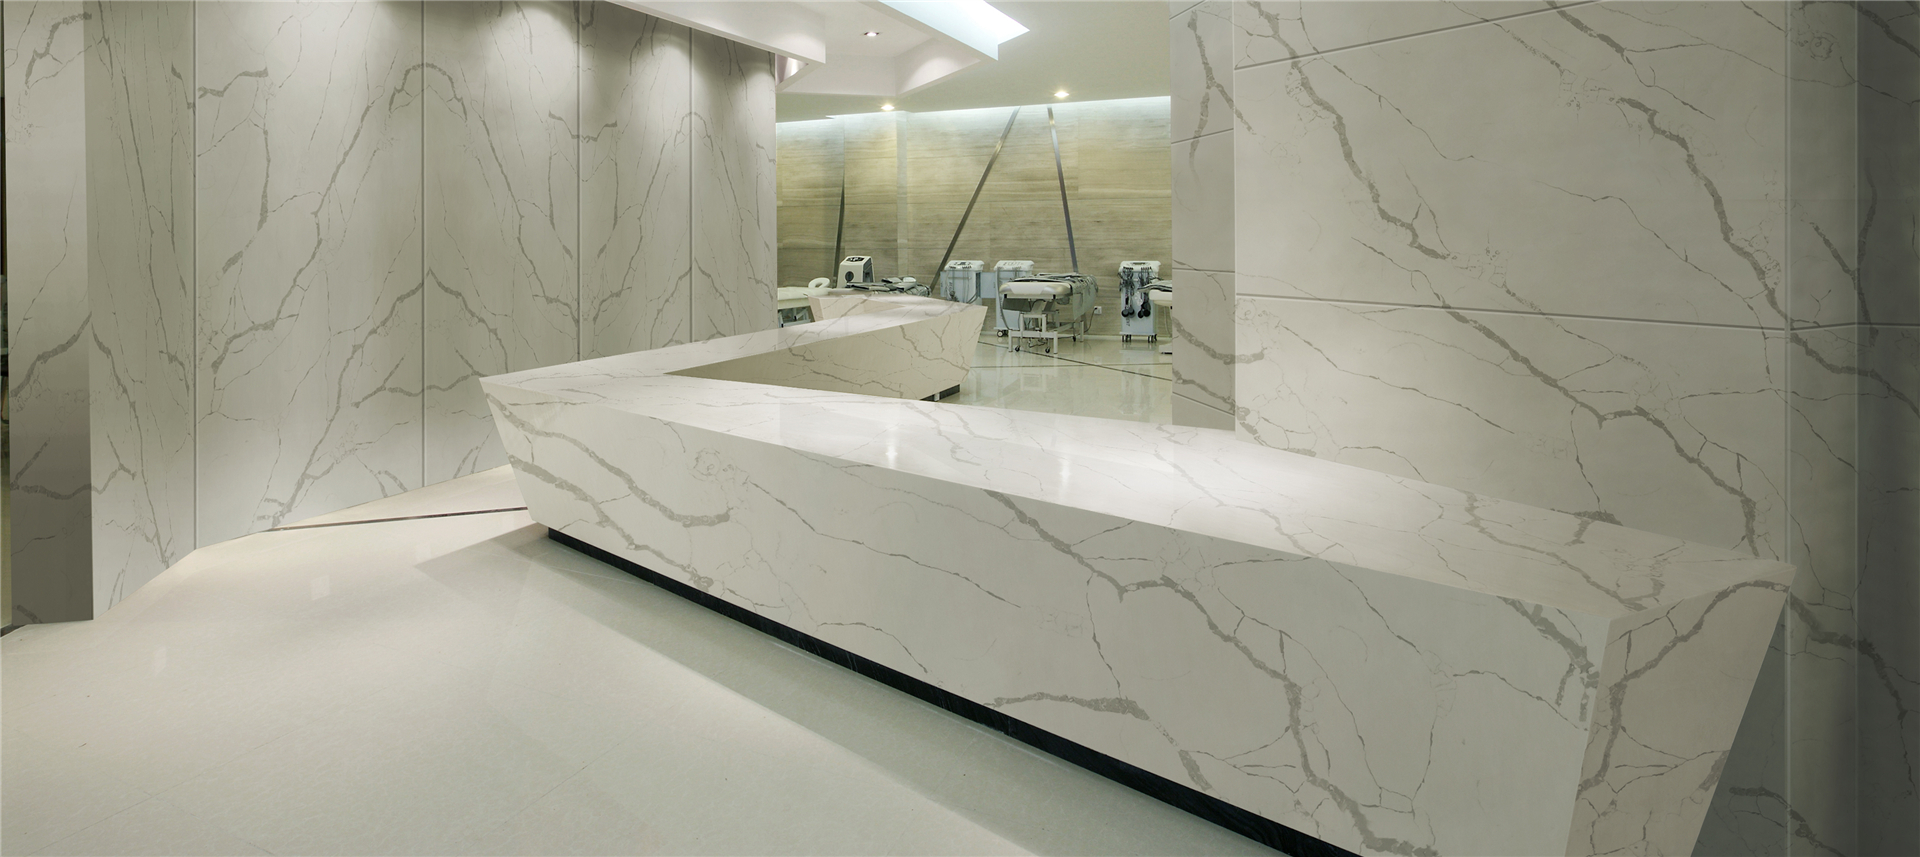 Wholesale Quartz Countertops Company   Leadstone USA